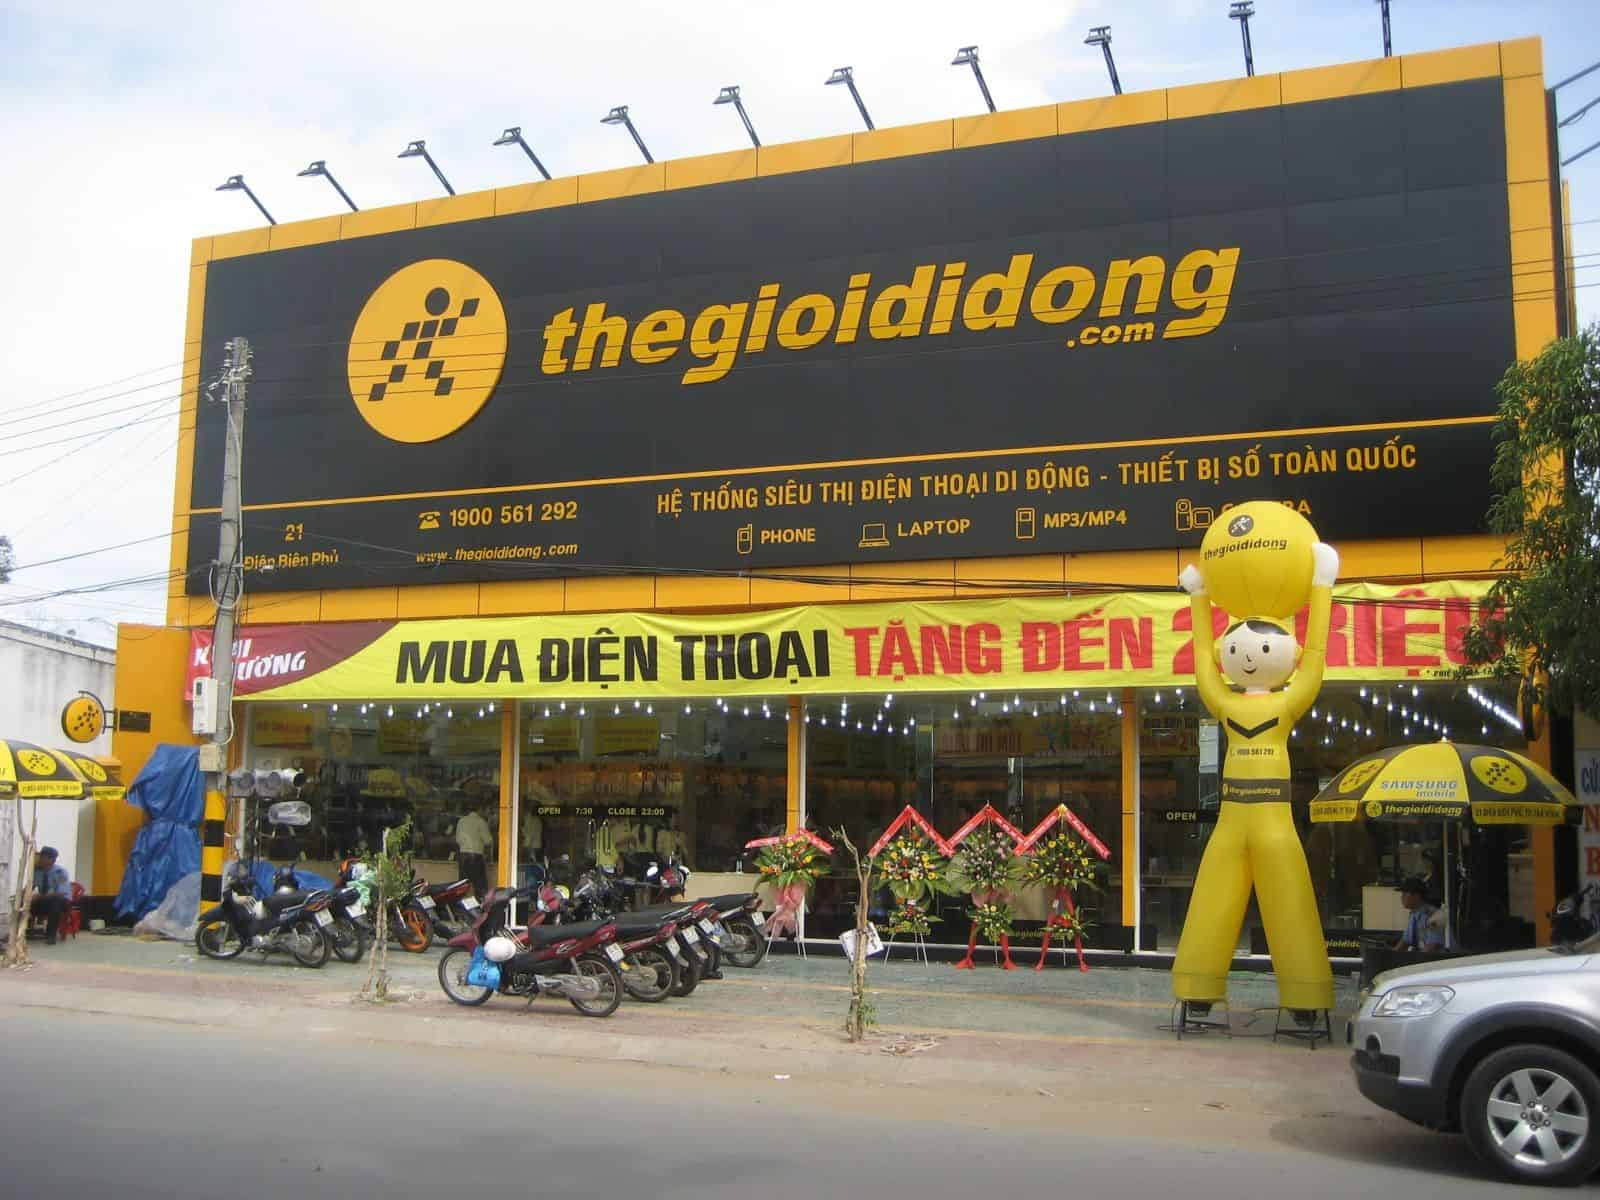 SIM cards can also be purchased at thegioidiong stores